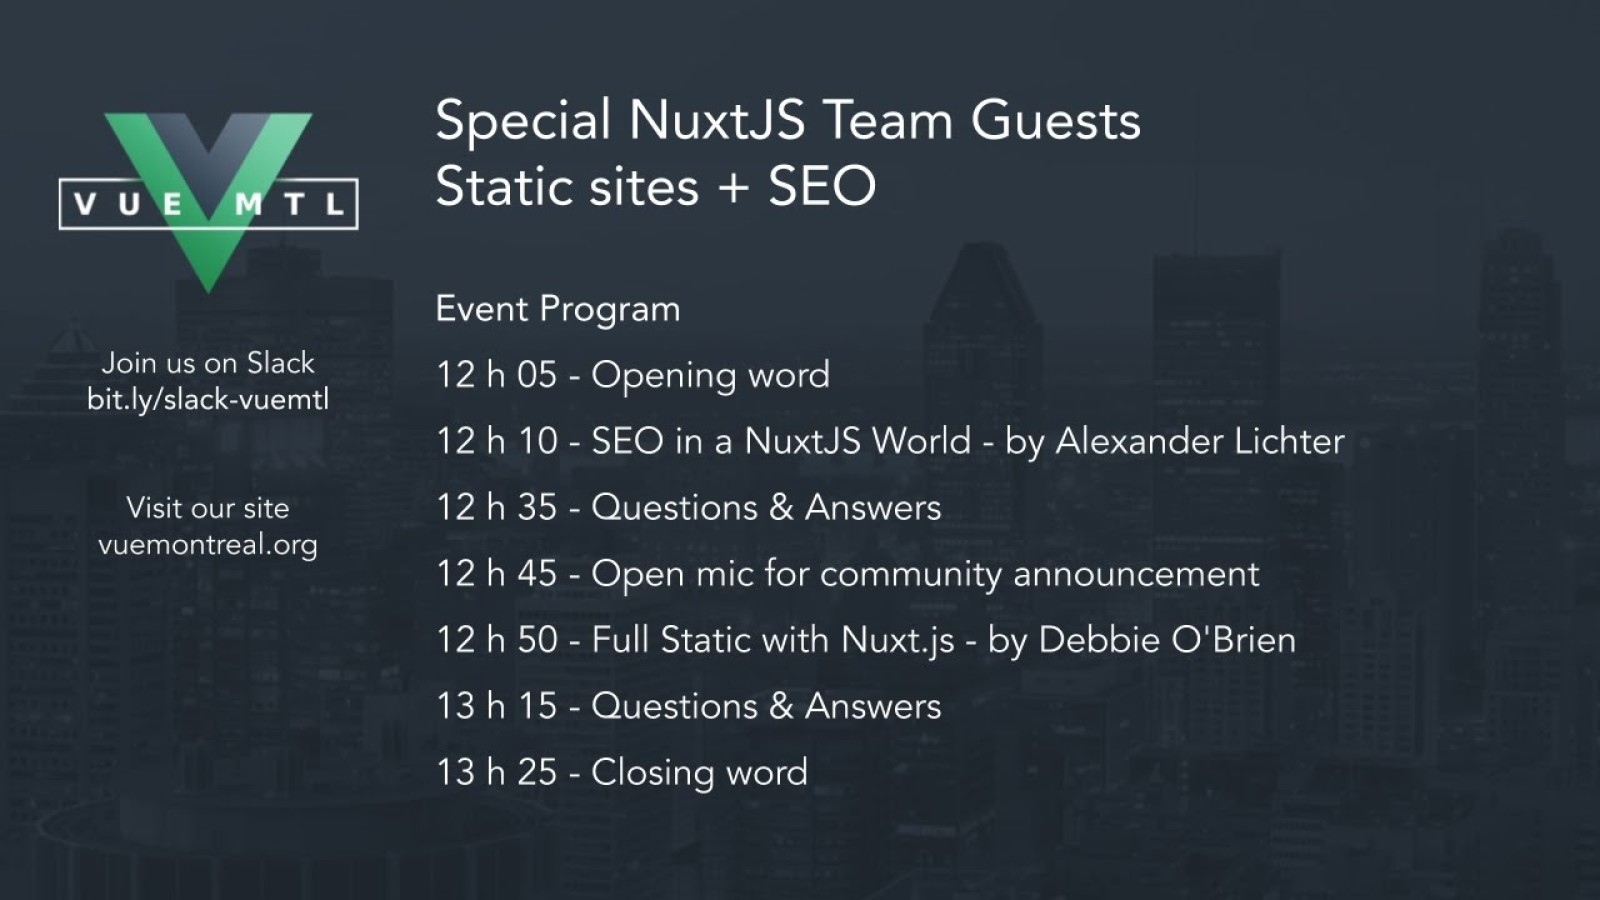 Full Static with Nuxt.js